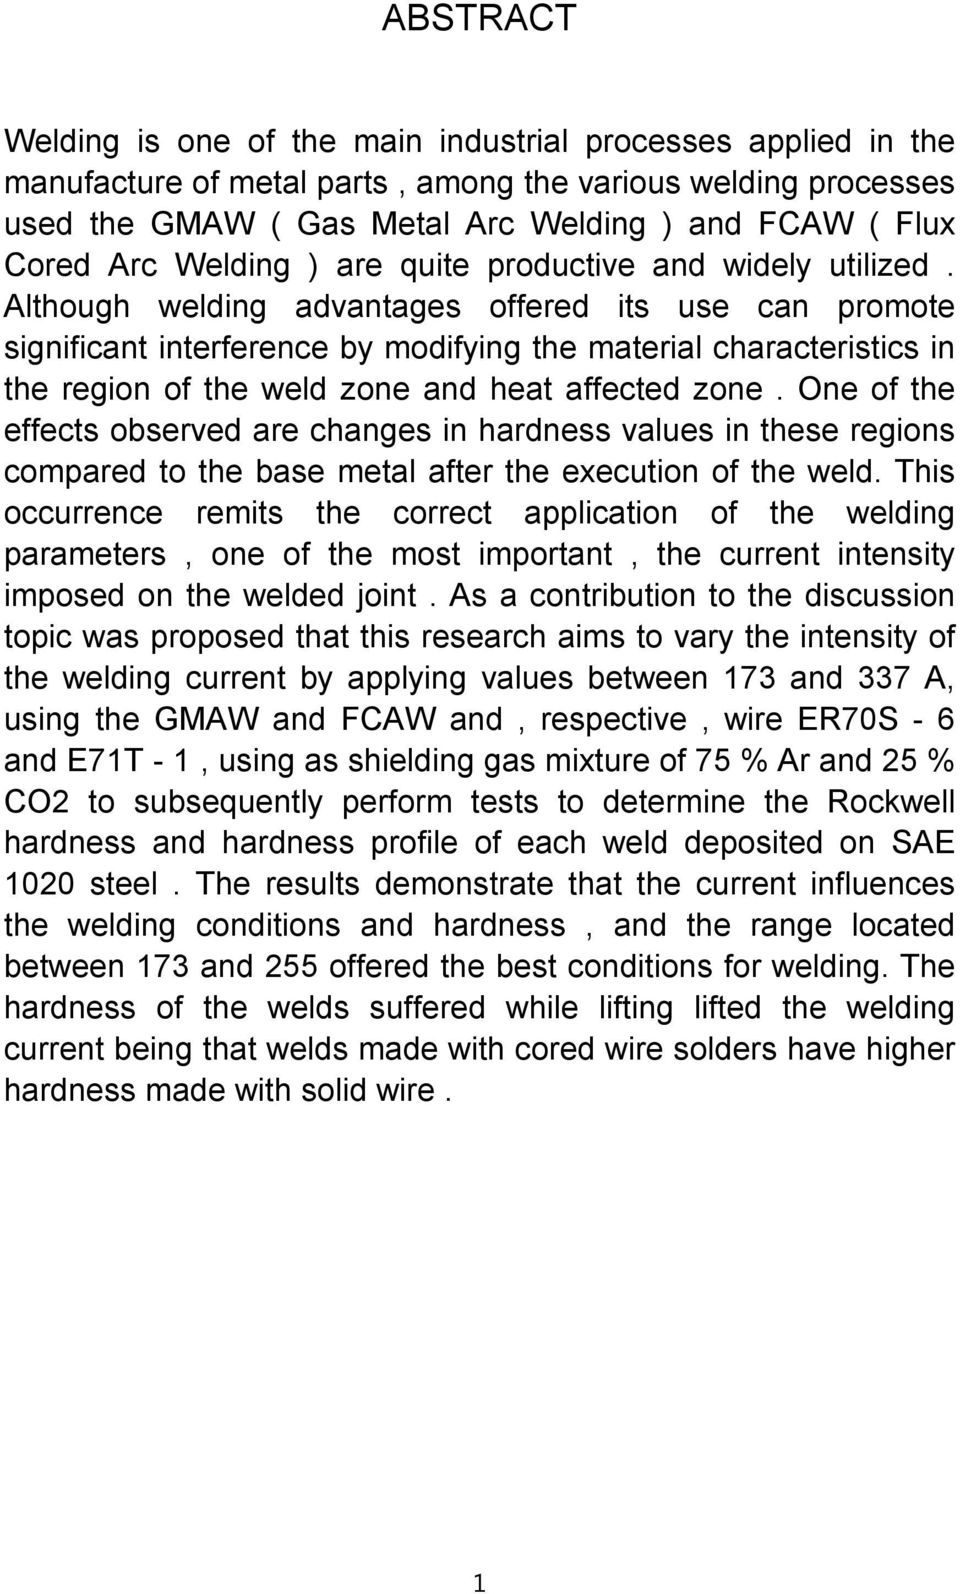 Although welding advantages offered its use can promote significant interference by modifying the material characteristics in the region of the weld zone and heat affected zone.